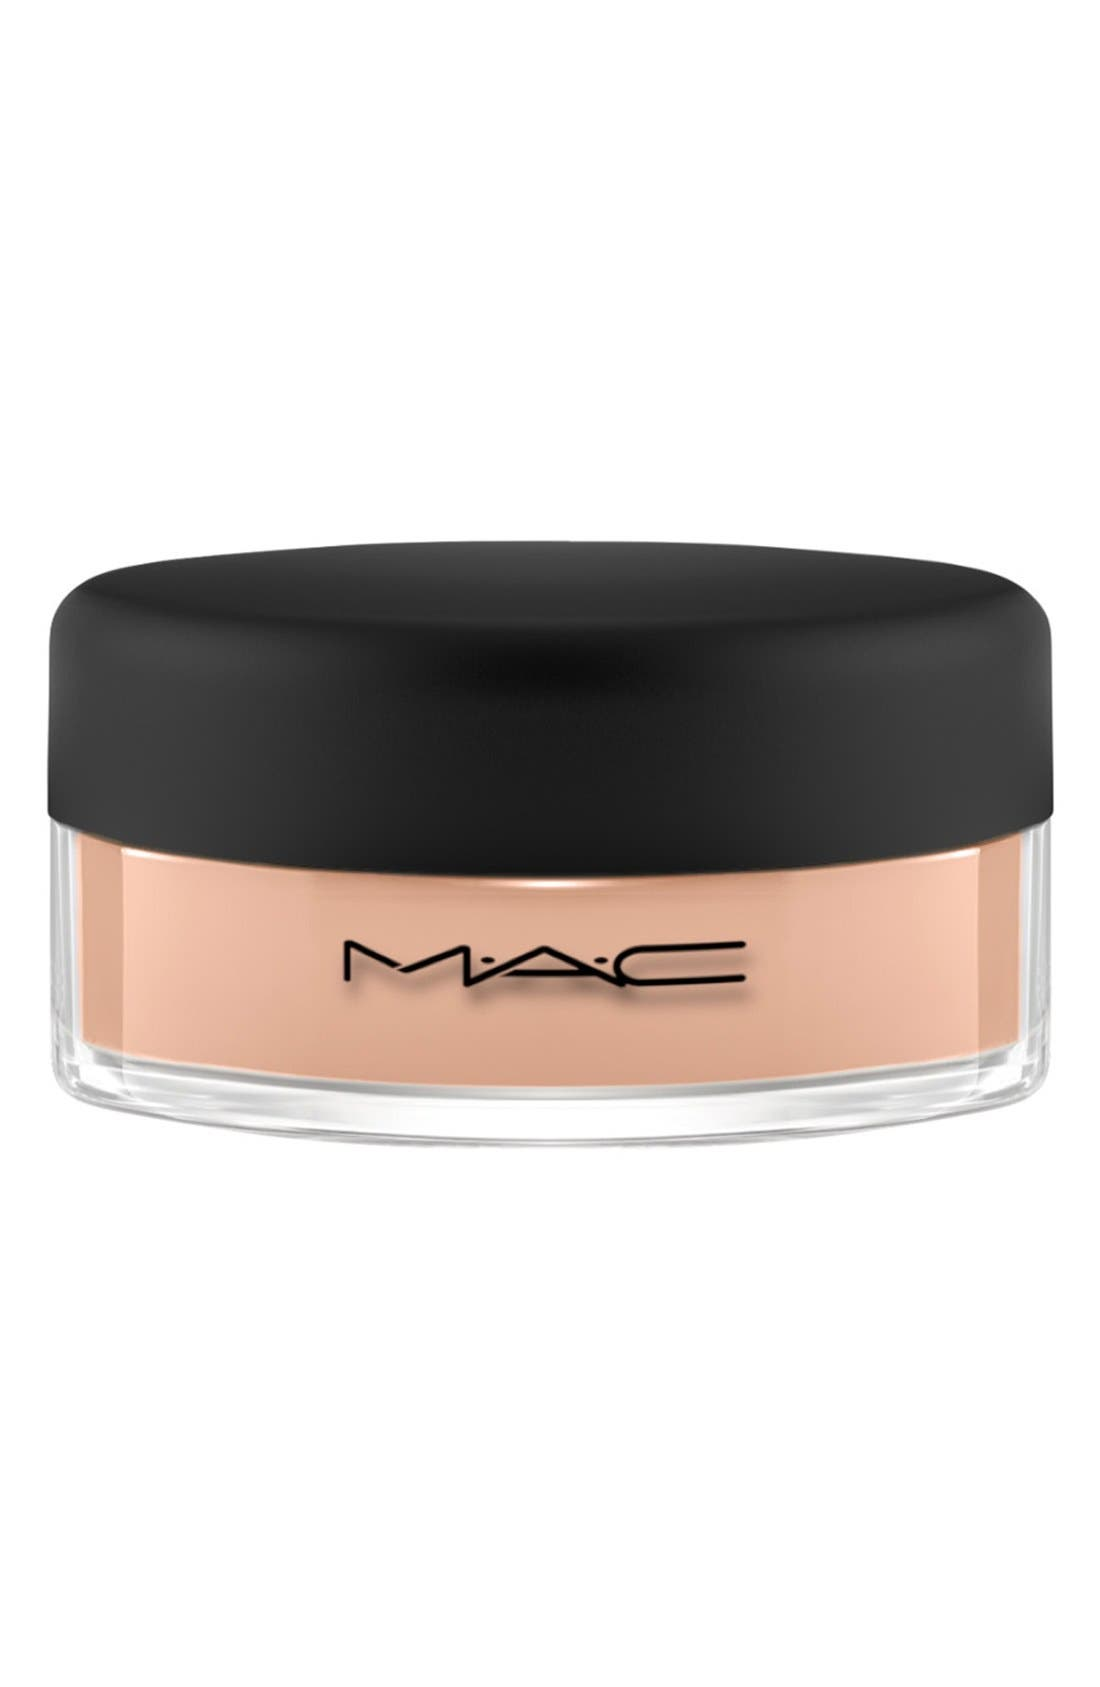 MAC Mineralize Loose Powder Foundation,                             Main thumbnail 1, color,                             200